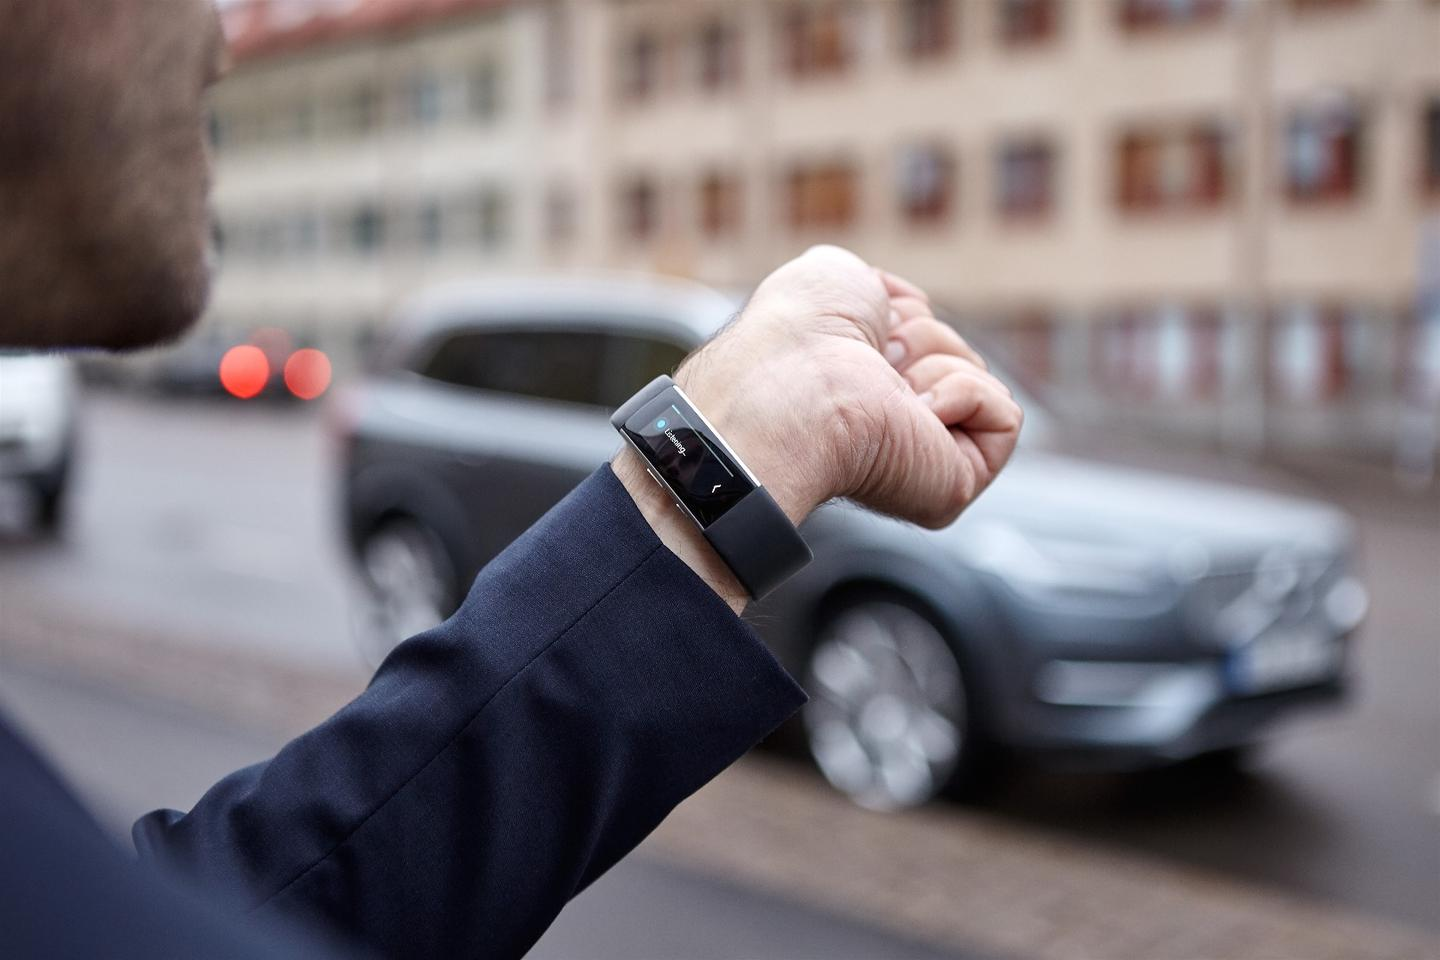 Volvo and Microsoft have teamed up to let forward-thinking owners talk to their cars remotely